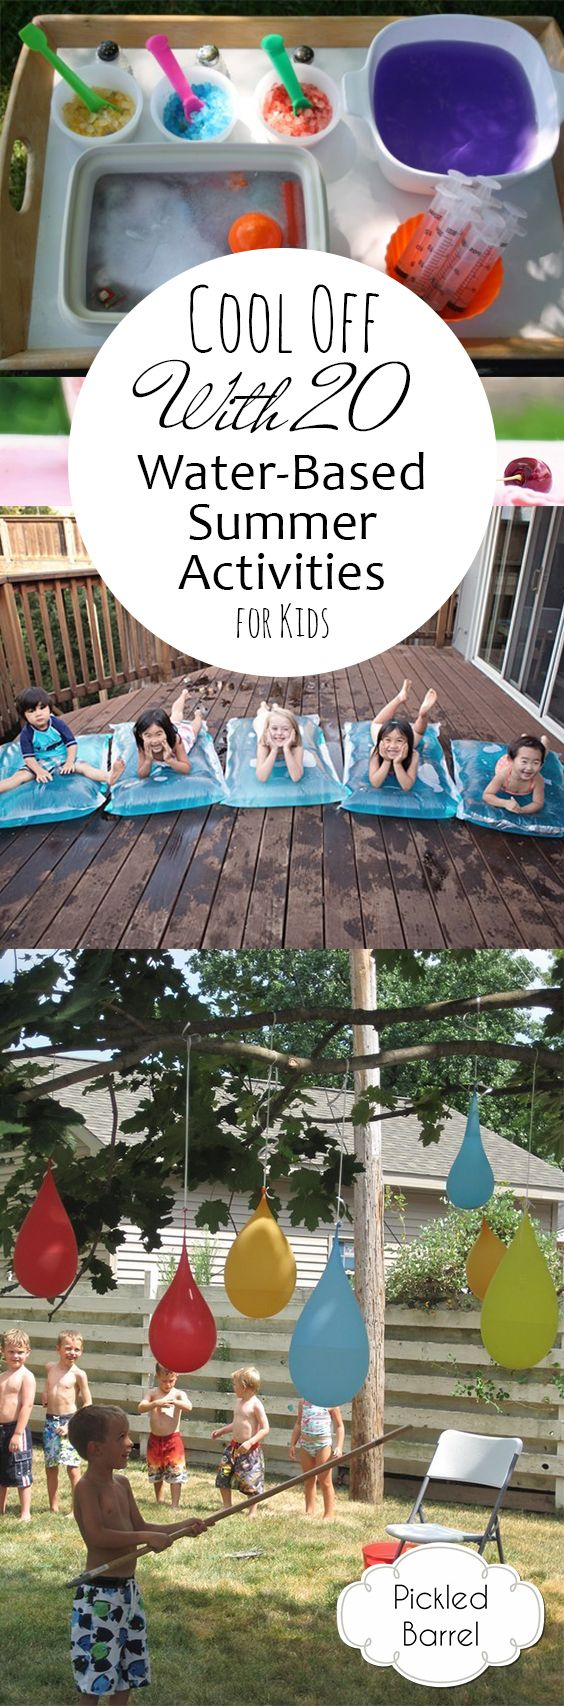 Cool Off With 20 Water-Based Summer Activities for Kids #summerfunideasforkids